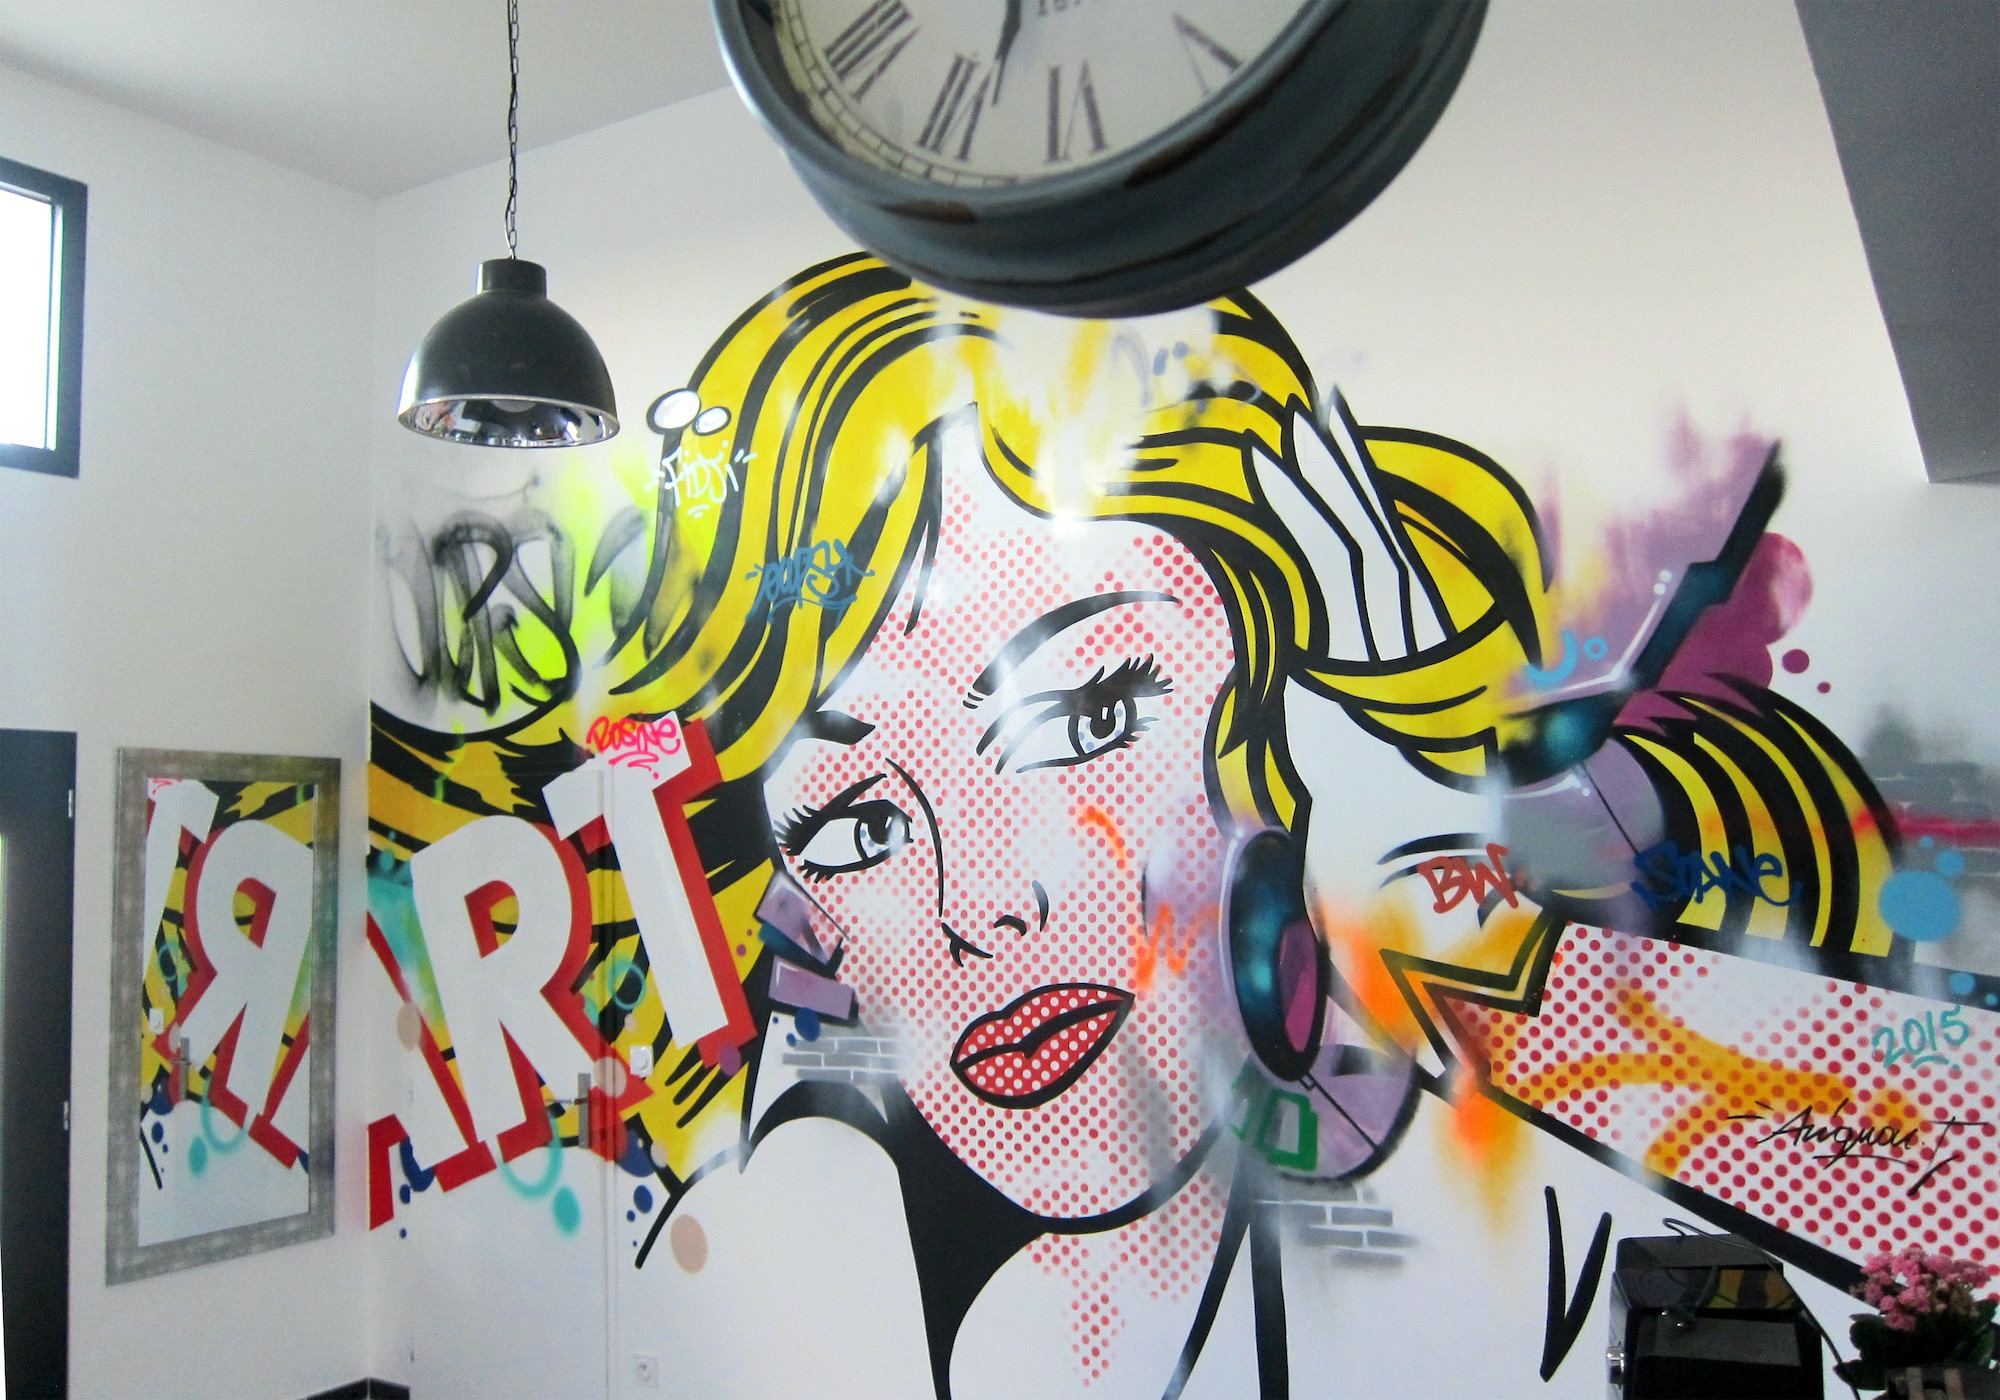 Deco_loft_pop_art_graffiti_fresque